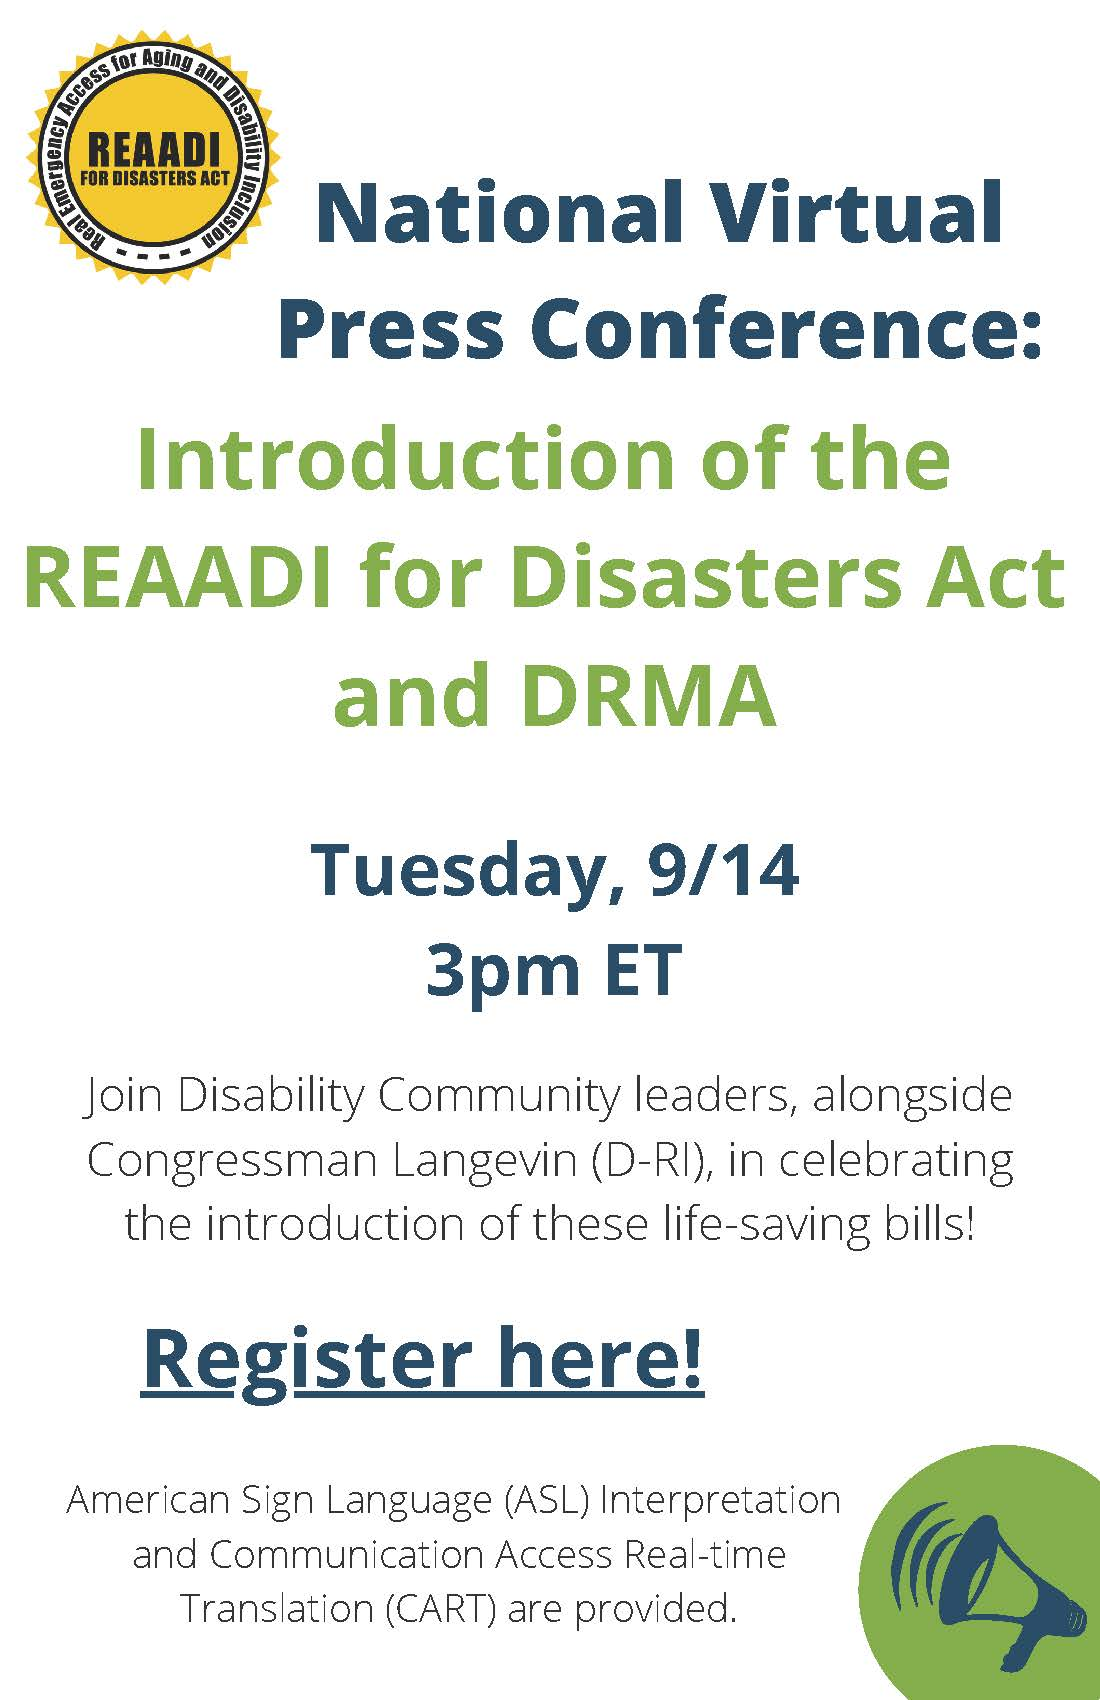 """Flyer with text that reads: """"National Virtual Press Conference: Introduction of the REAADI for Disasters Act and DRMA; Tuesday, 9/14 3pm ET; Join Disability Community leaders, alongside Congressman Langevin (D-RI), in celebrating the introduction of these life-saving bills!; American Sign Language (ASL) Interpretation and Communication Access Real-time Translation (CART) are provided."""" The REAADI logo, a sun with the words REAADI for Disasters Act, is in the top left corner. A megaphone graphic sits in the bottom right corner."""